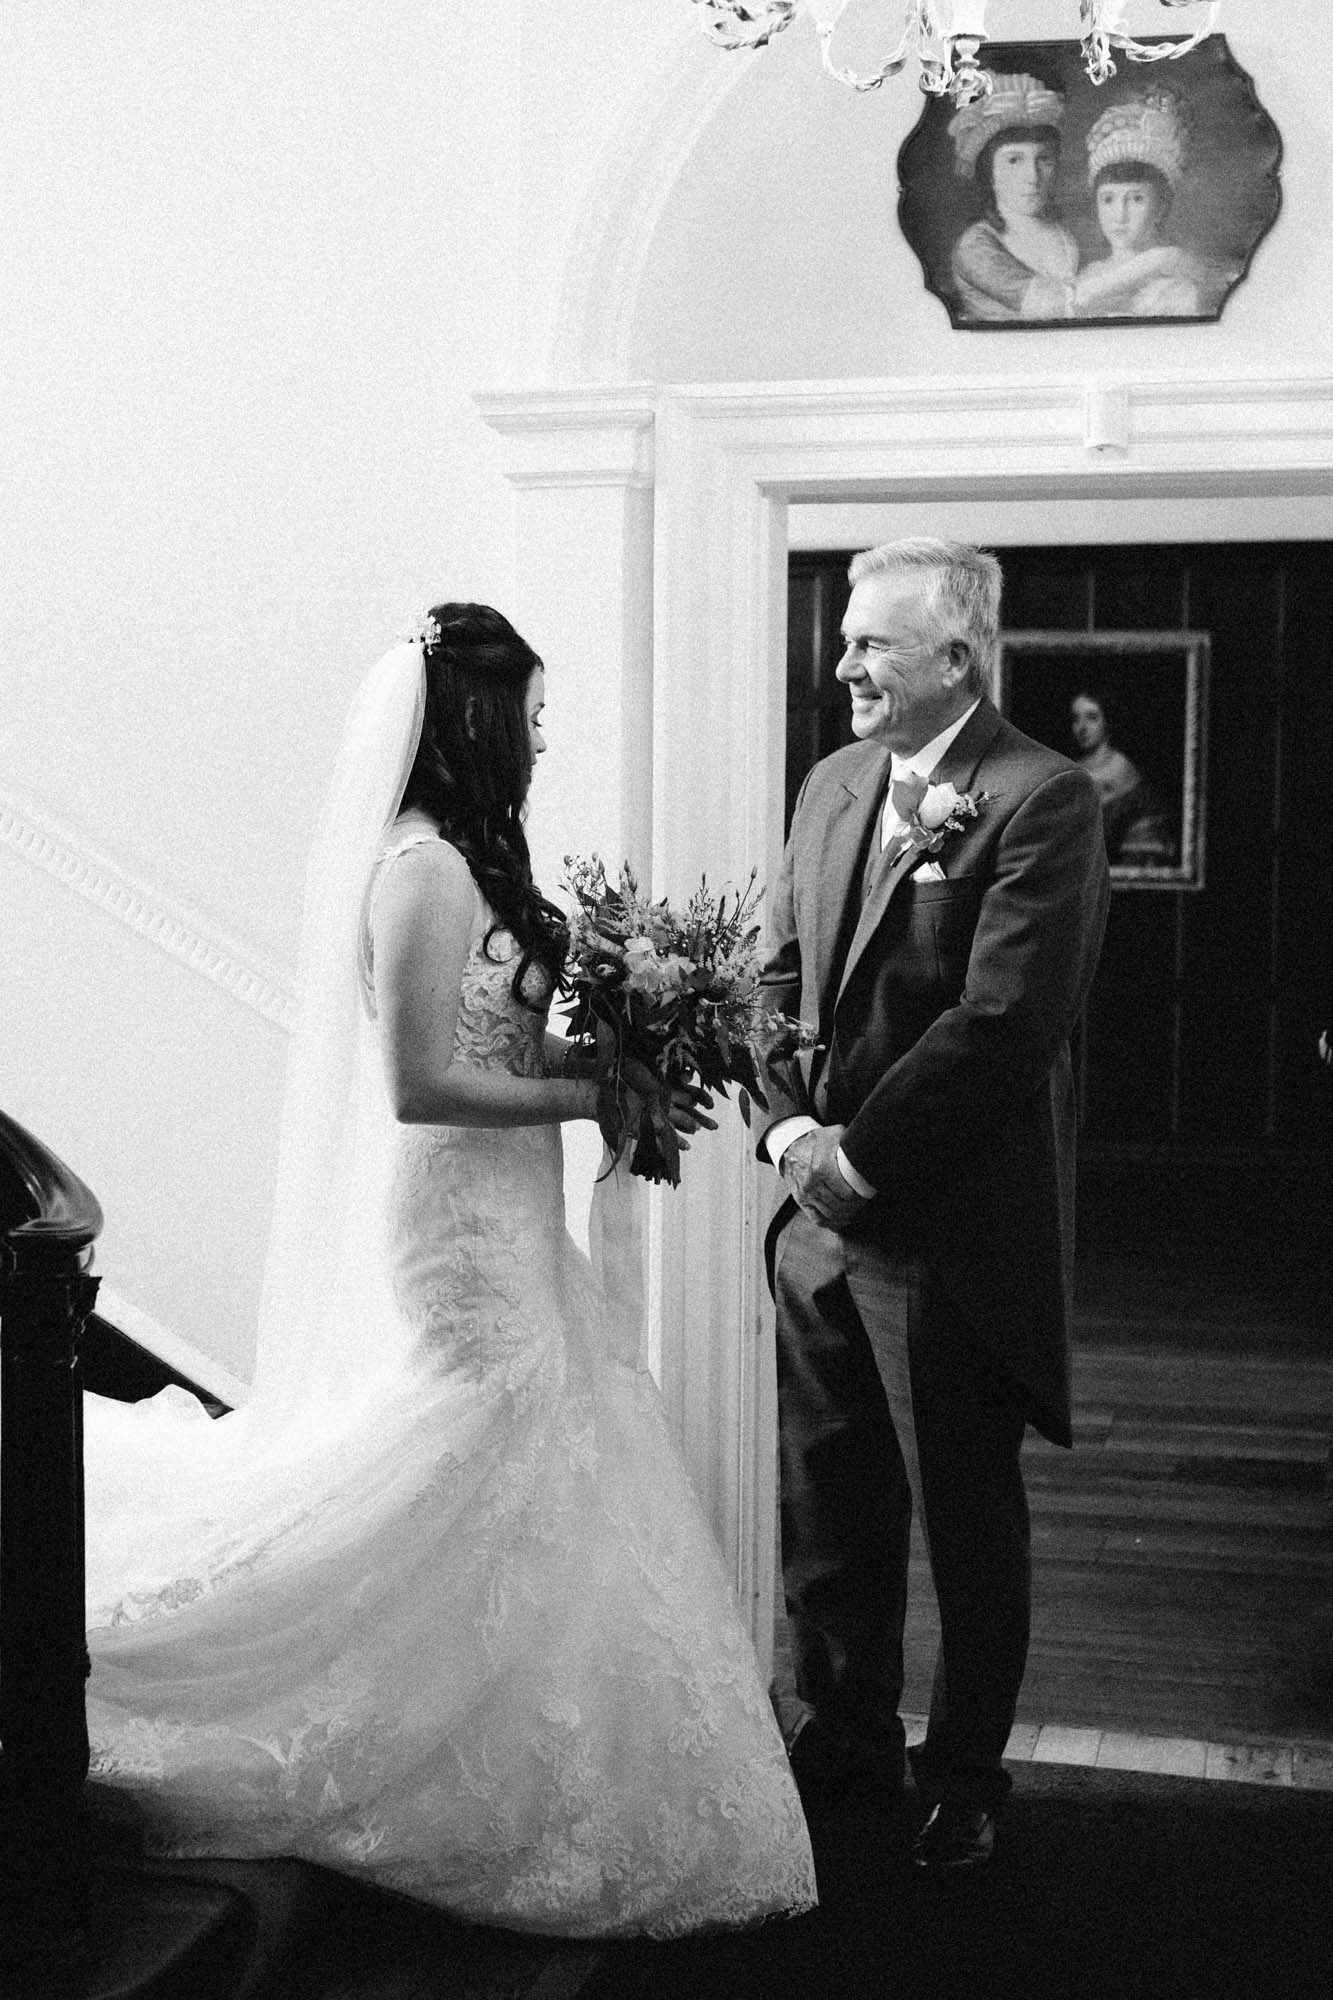 Father of the bride greeting bride at the bottom of a staircase